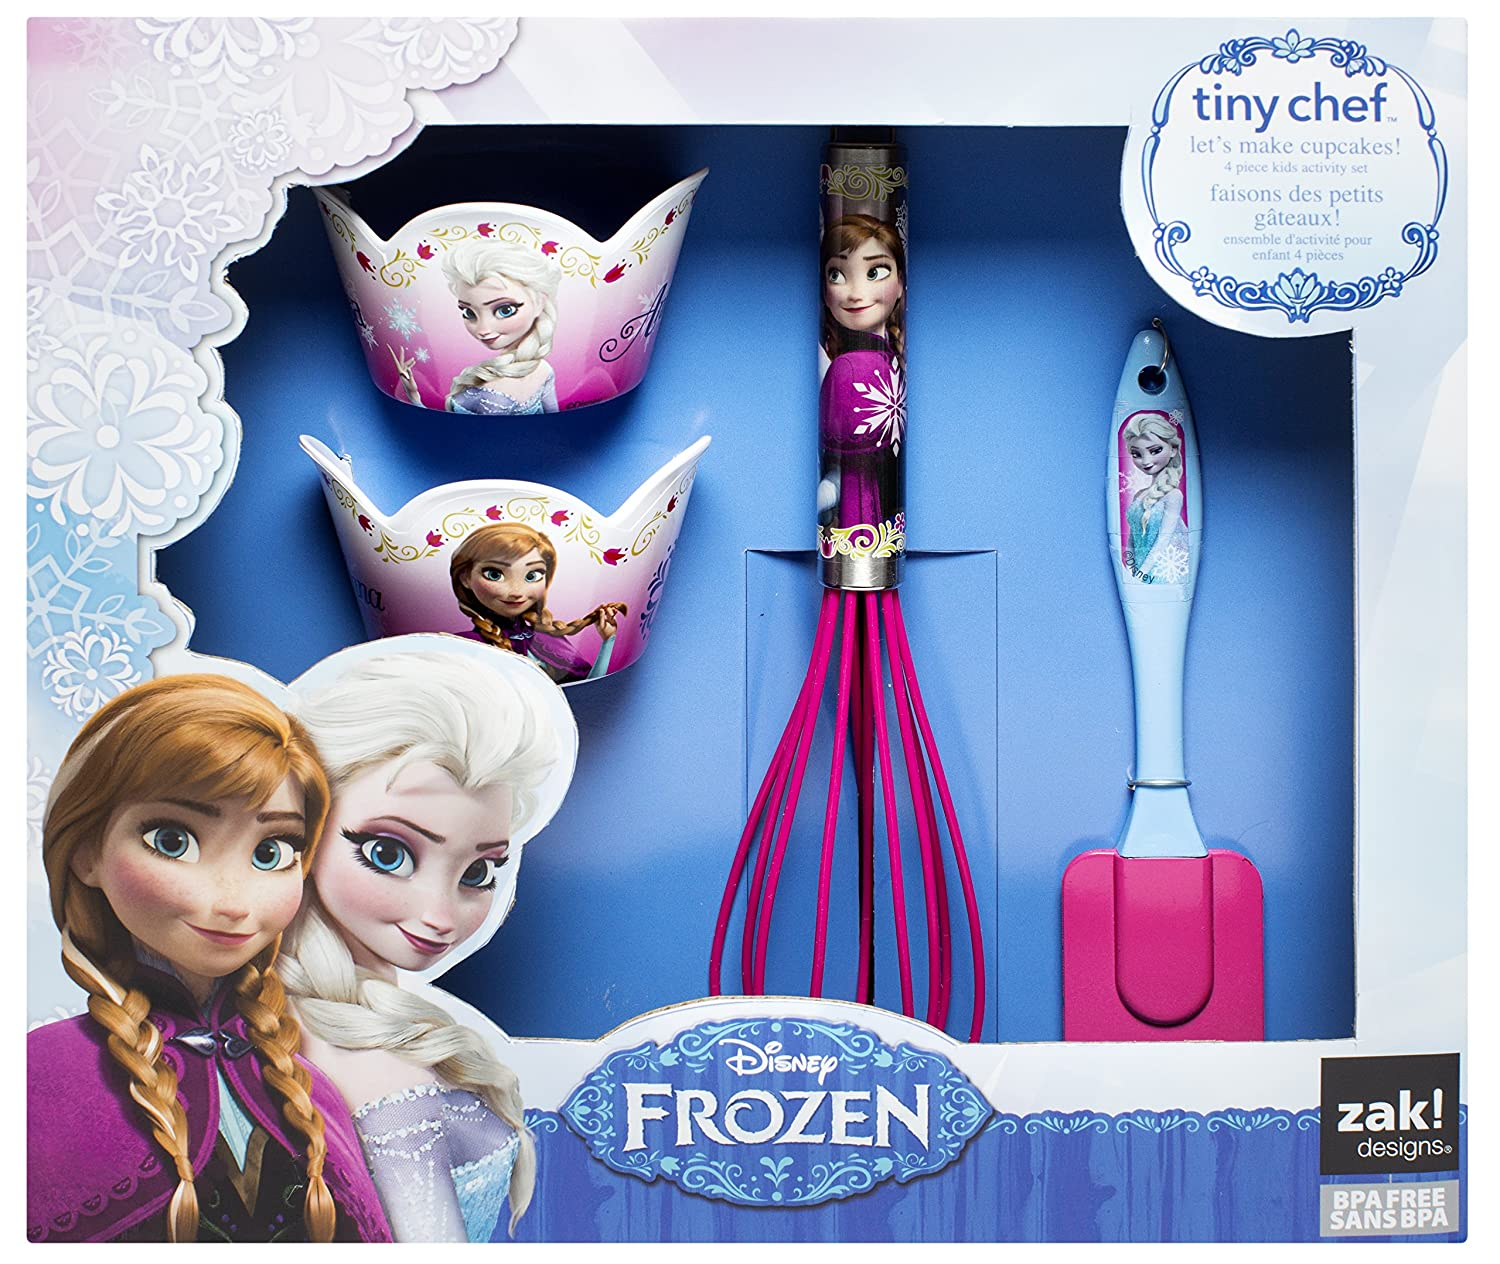 Zak! Designs 4-Piece Tiny Chef Cupcake Baking Set with Elsa & Anna from Frozen Zak Designs FZNJ-Q450